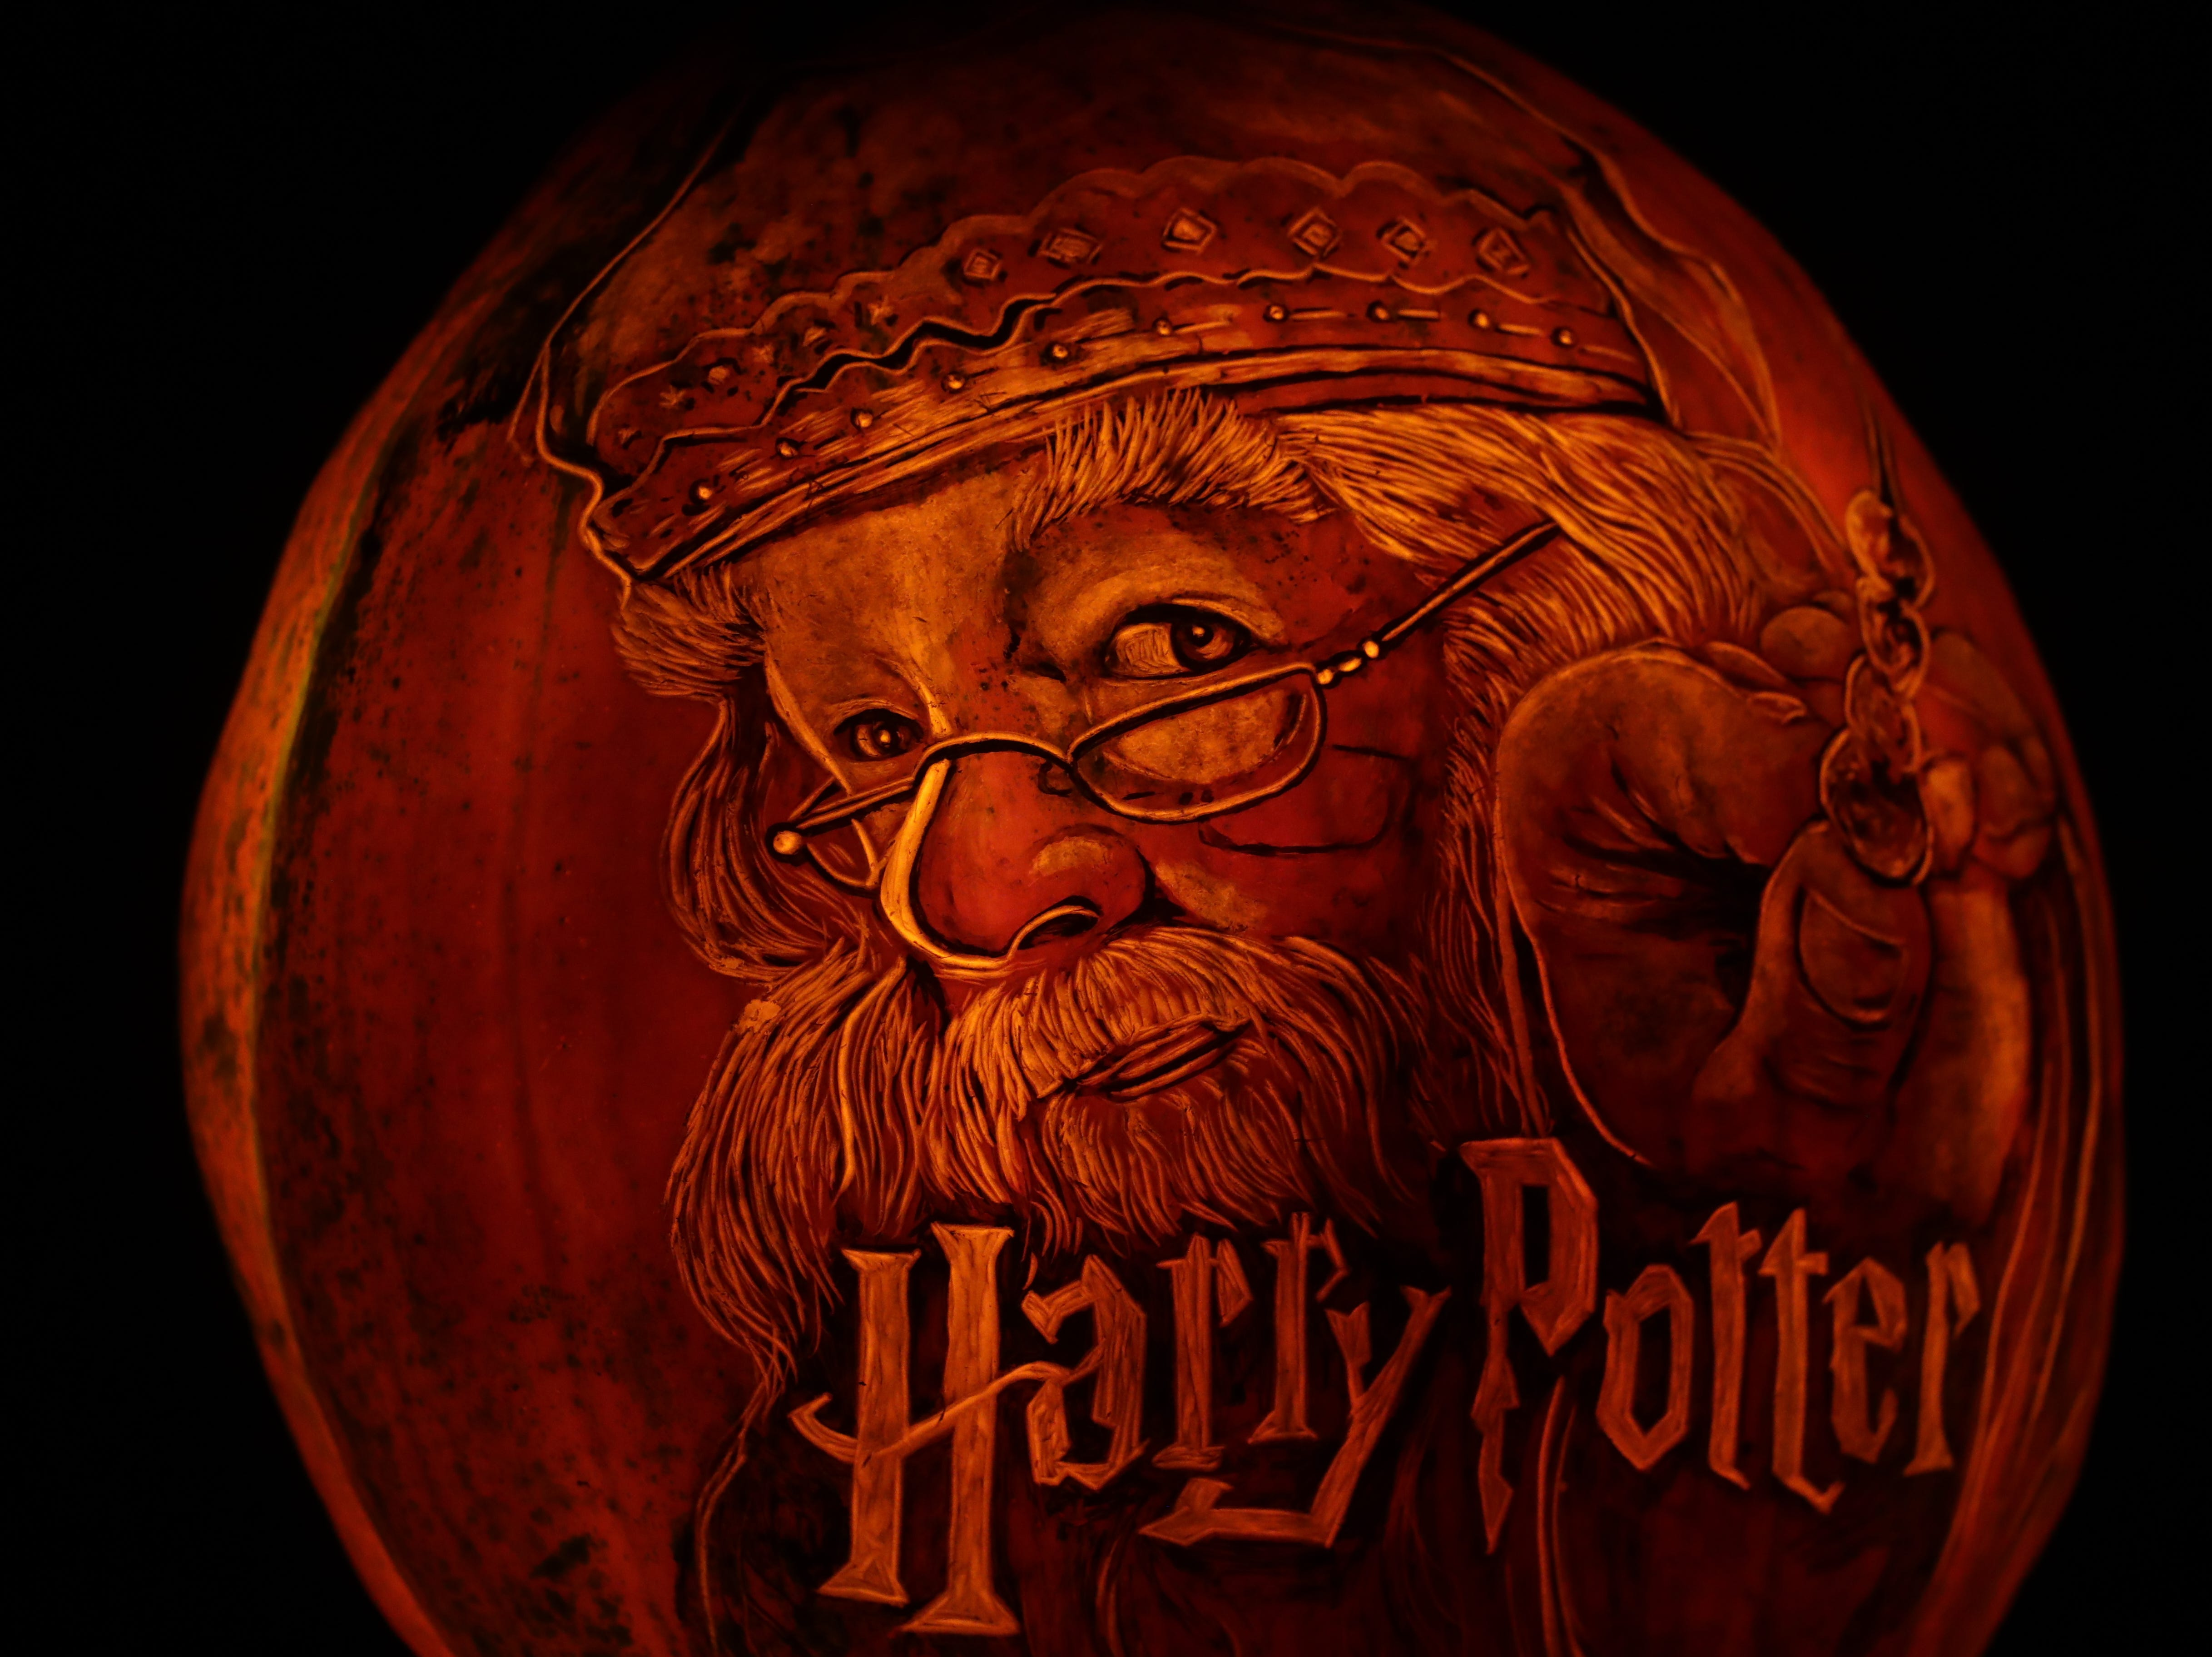 Professor Dumbledore from Harry Potter appears on a pumpkin at this year's Jack O' Lantern Spectacular. Oct. 9, 2018